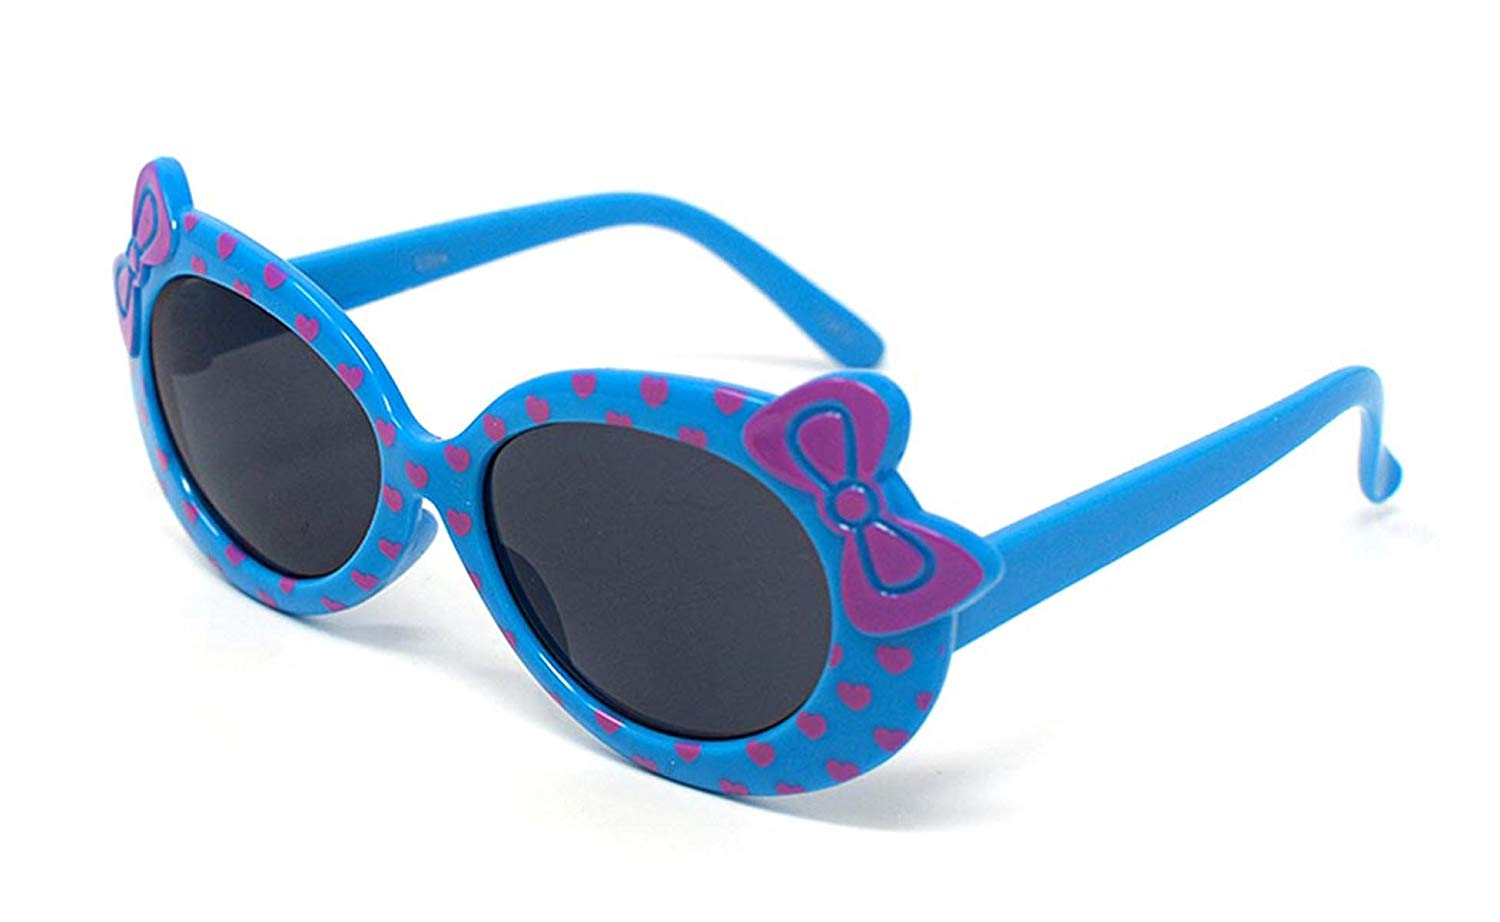 11a3e0695d Get Quotations · 3 x Blue Coloured Childrens Kids Girls Stylish Cute  Designer Style Sunglasses with a Bow and